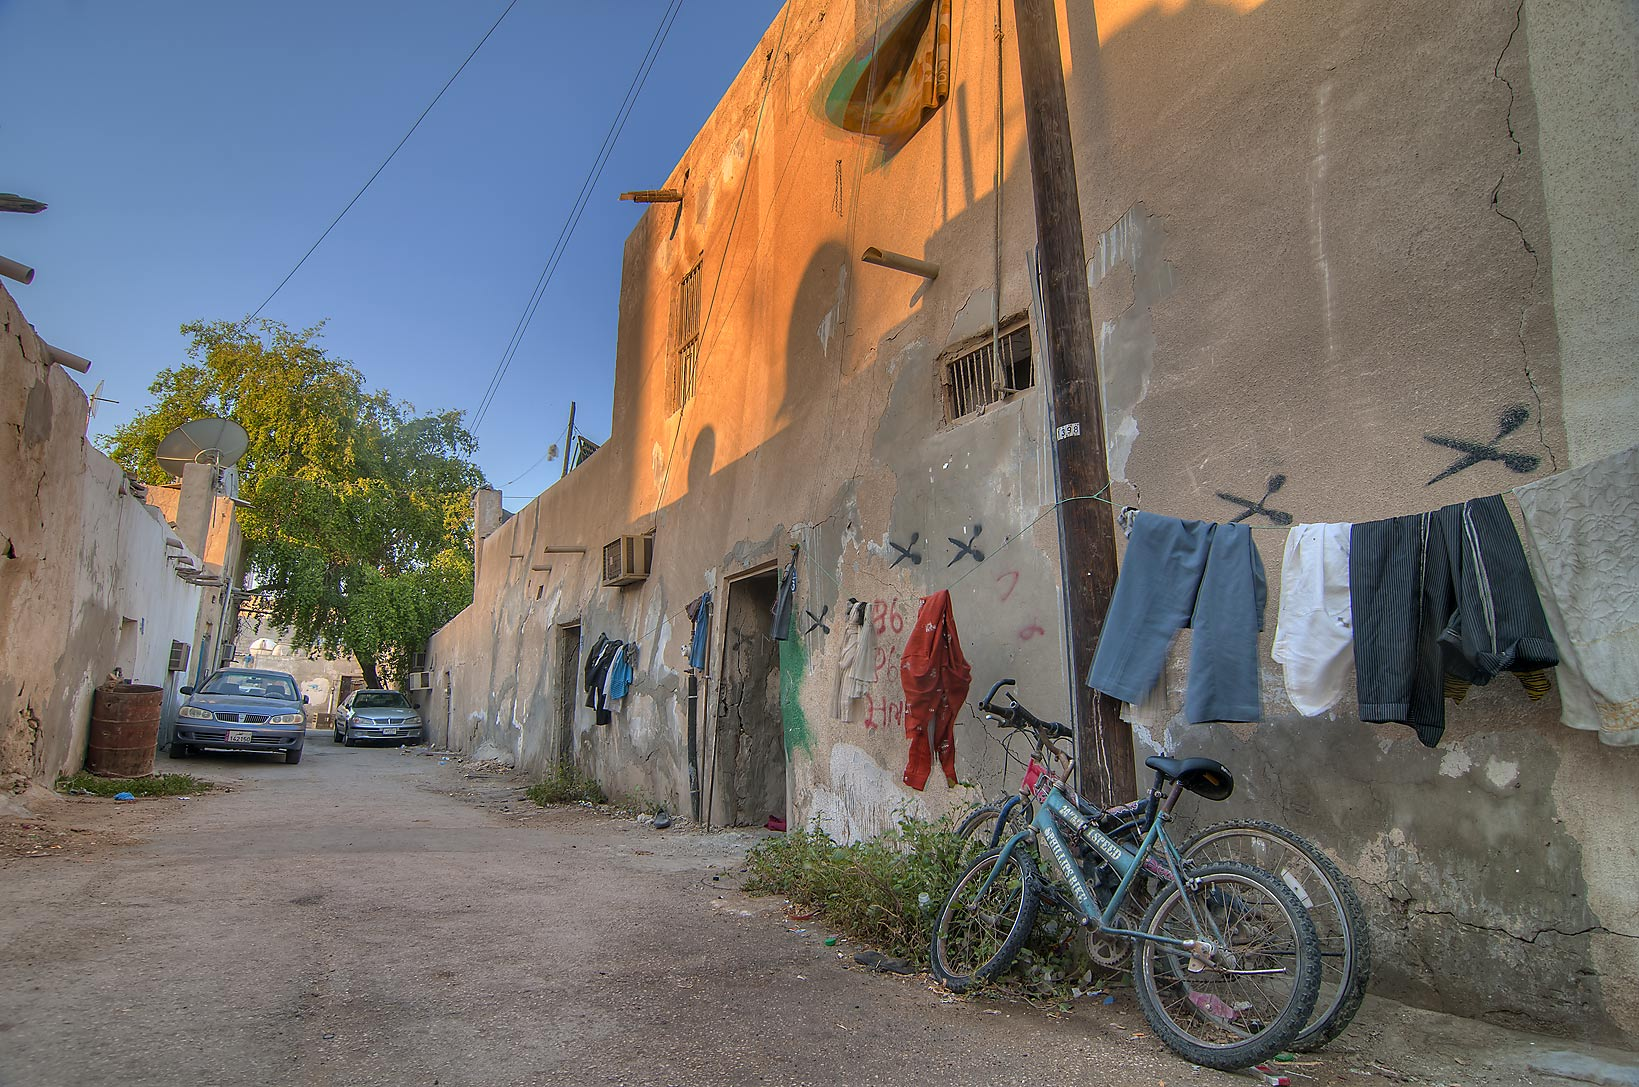 Old houses near Al Mugheera St., Musheirib area. Doha, Qatar